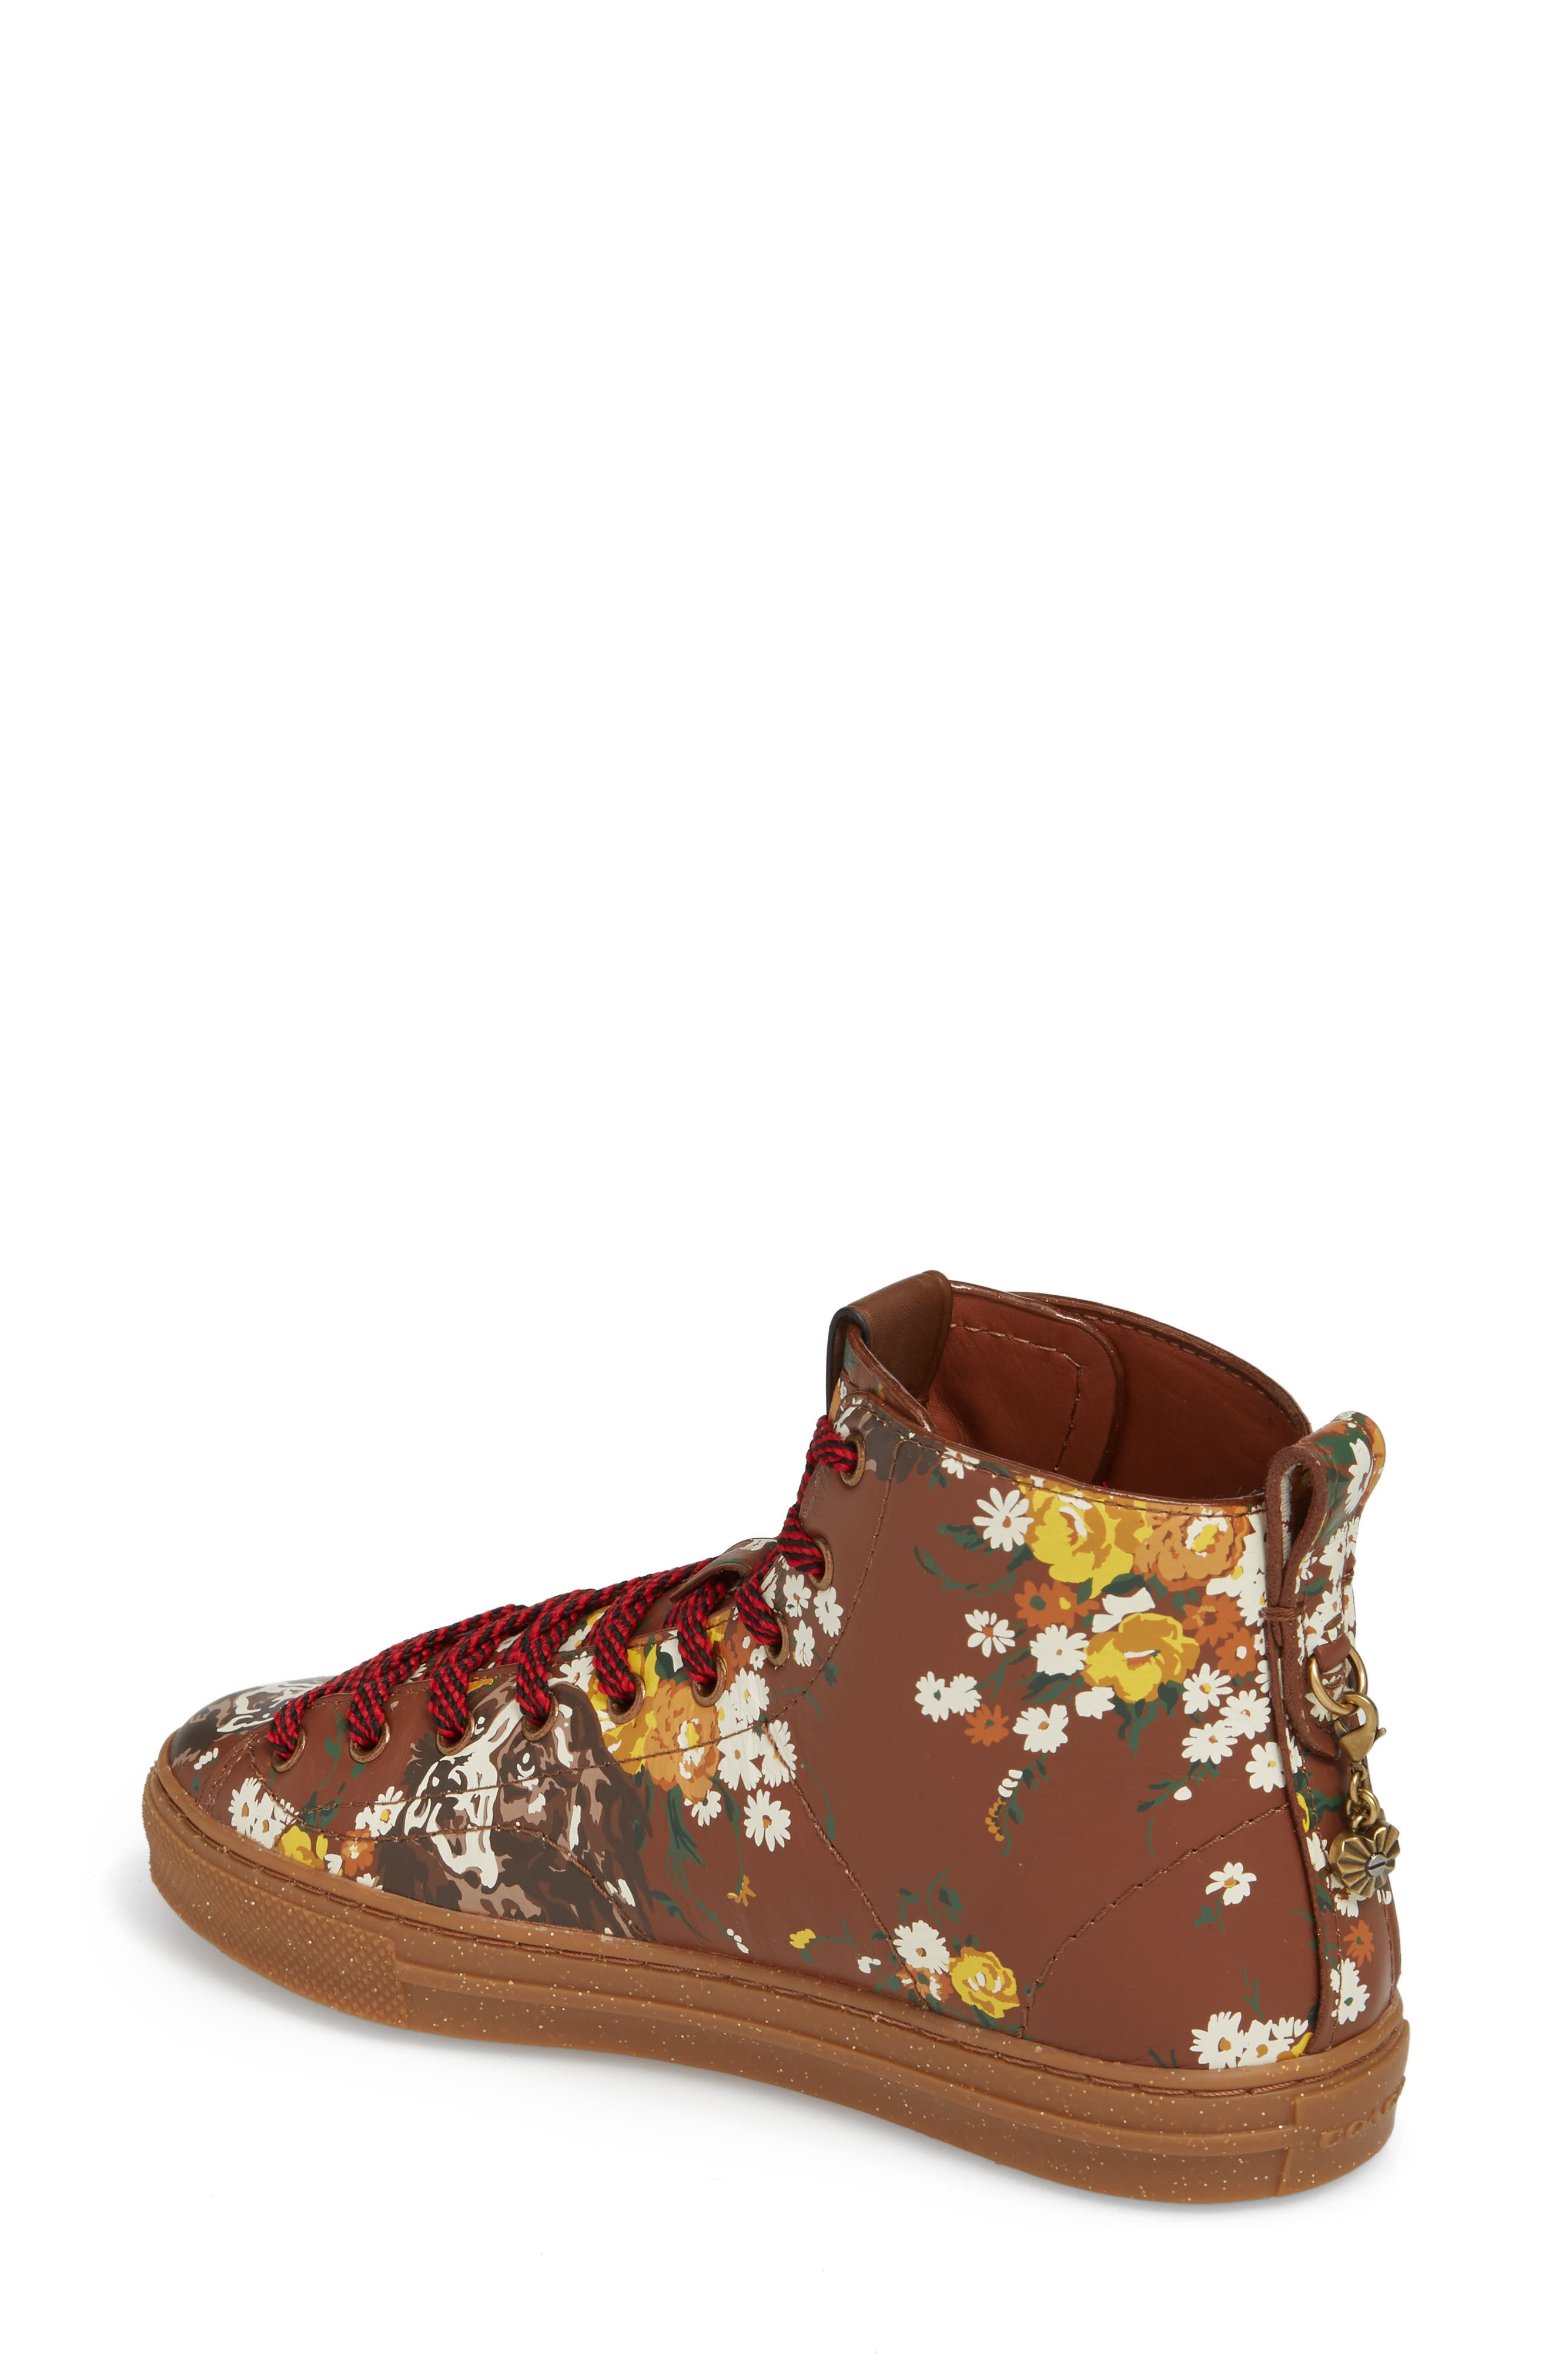 Flower Patch High Top Sneaker,                             Alternate thumbnail 2, color,                             Teak Leather